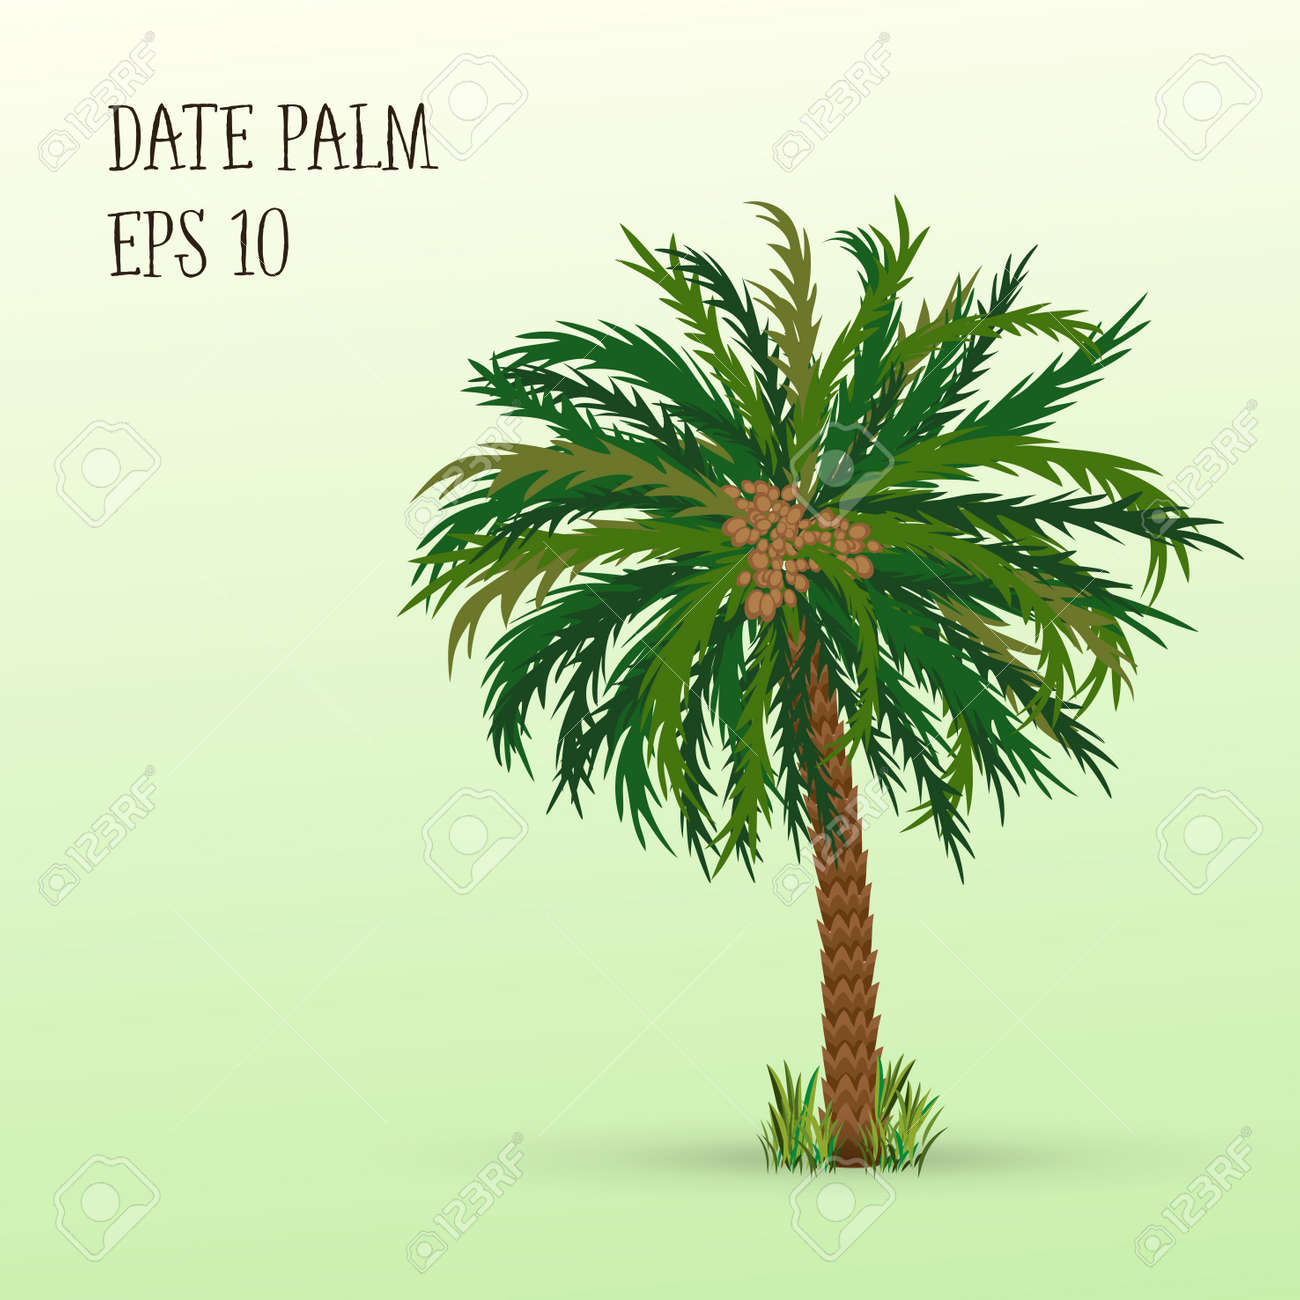 Date Palm Tree With Ripe Fruits Dates Vector Illustration Eps